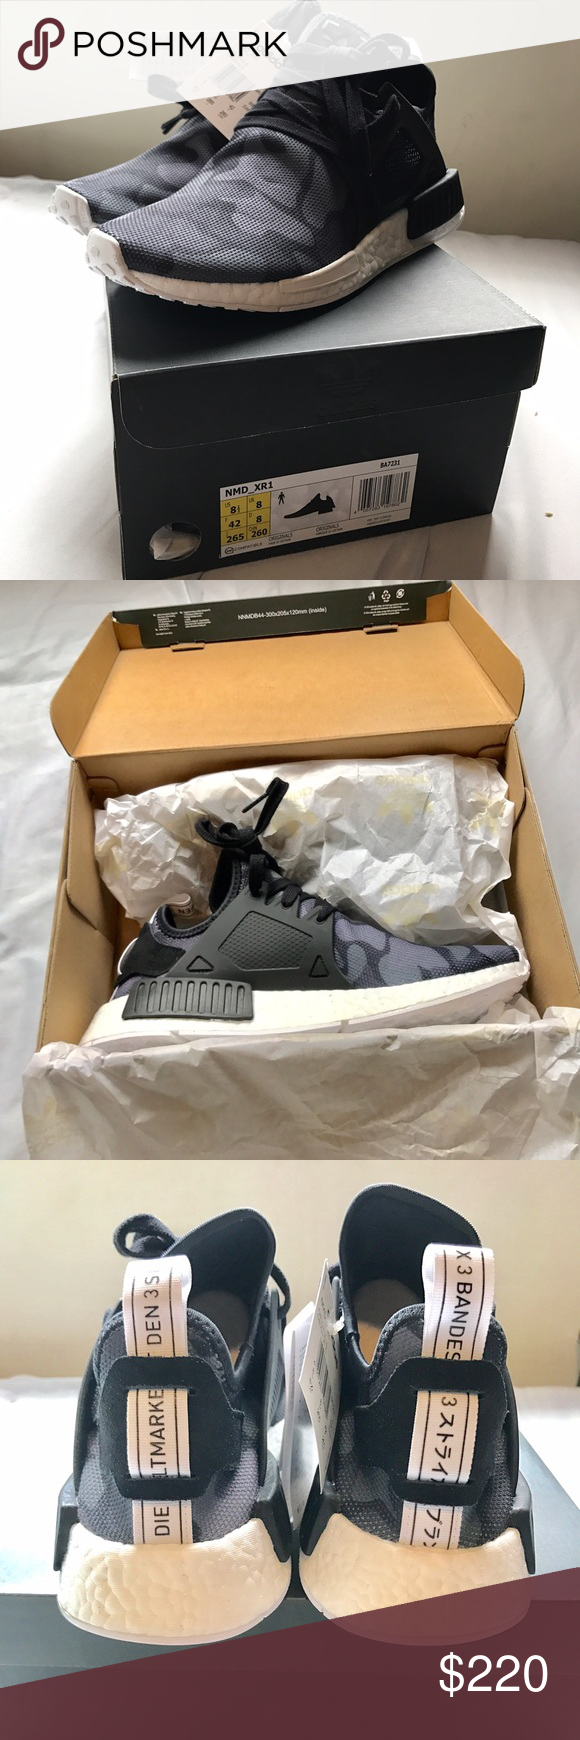 Sold Sold Sold nwt Adidas Sko, Sko sneakers and Camo d9035a